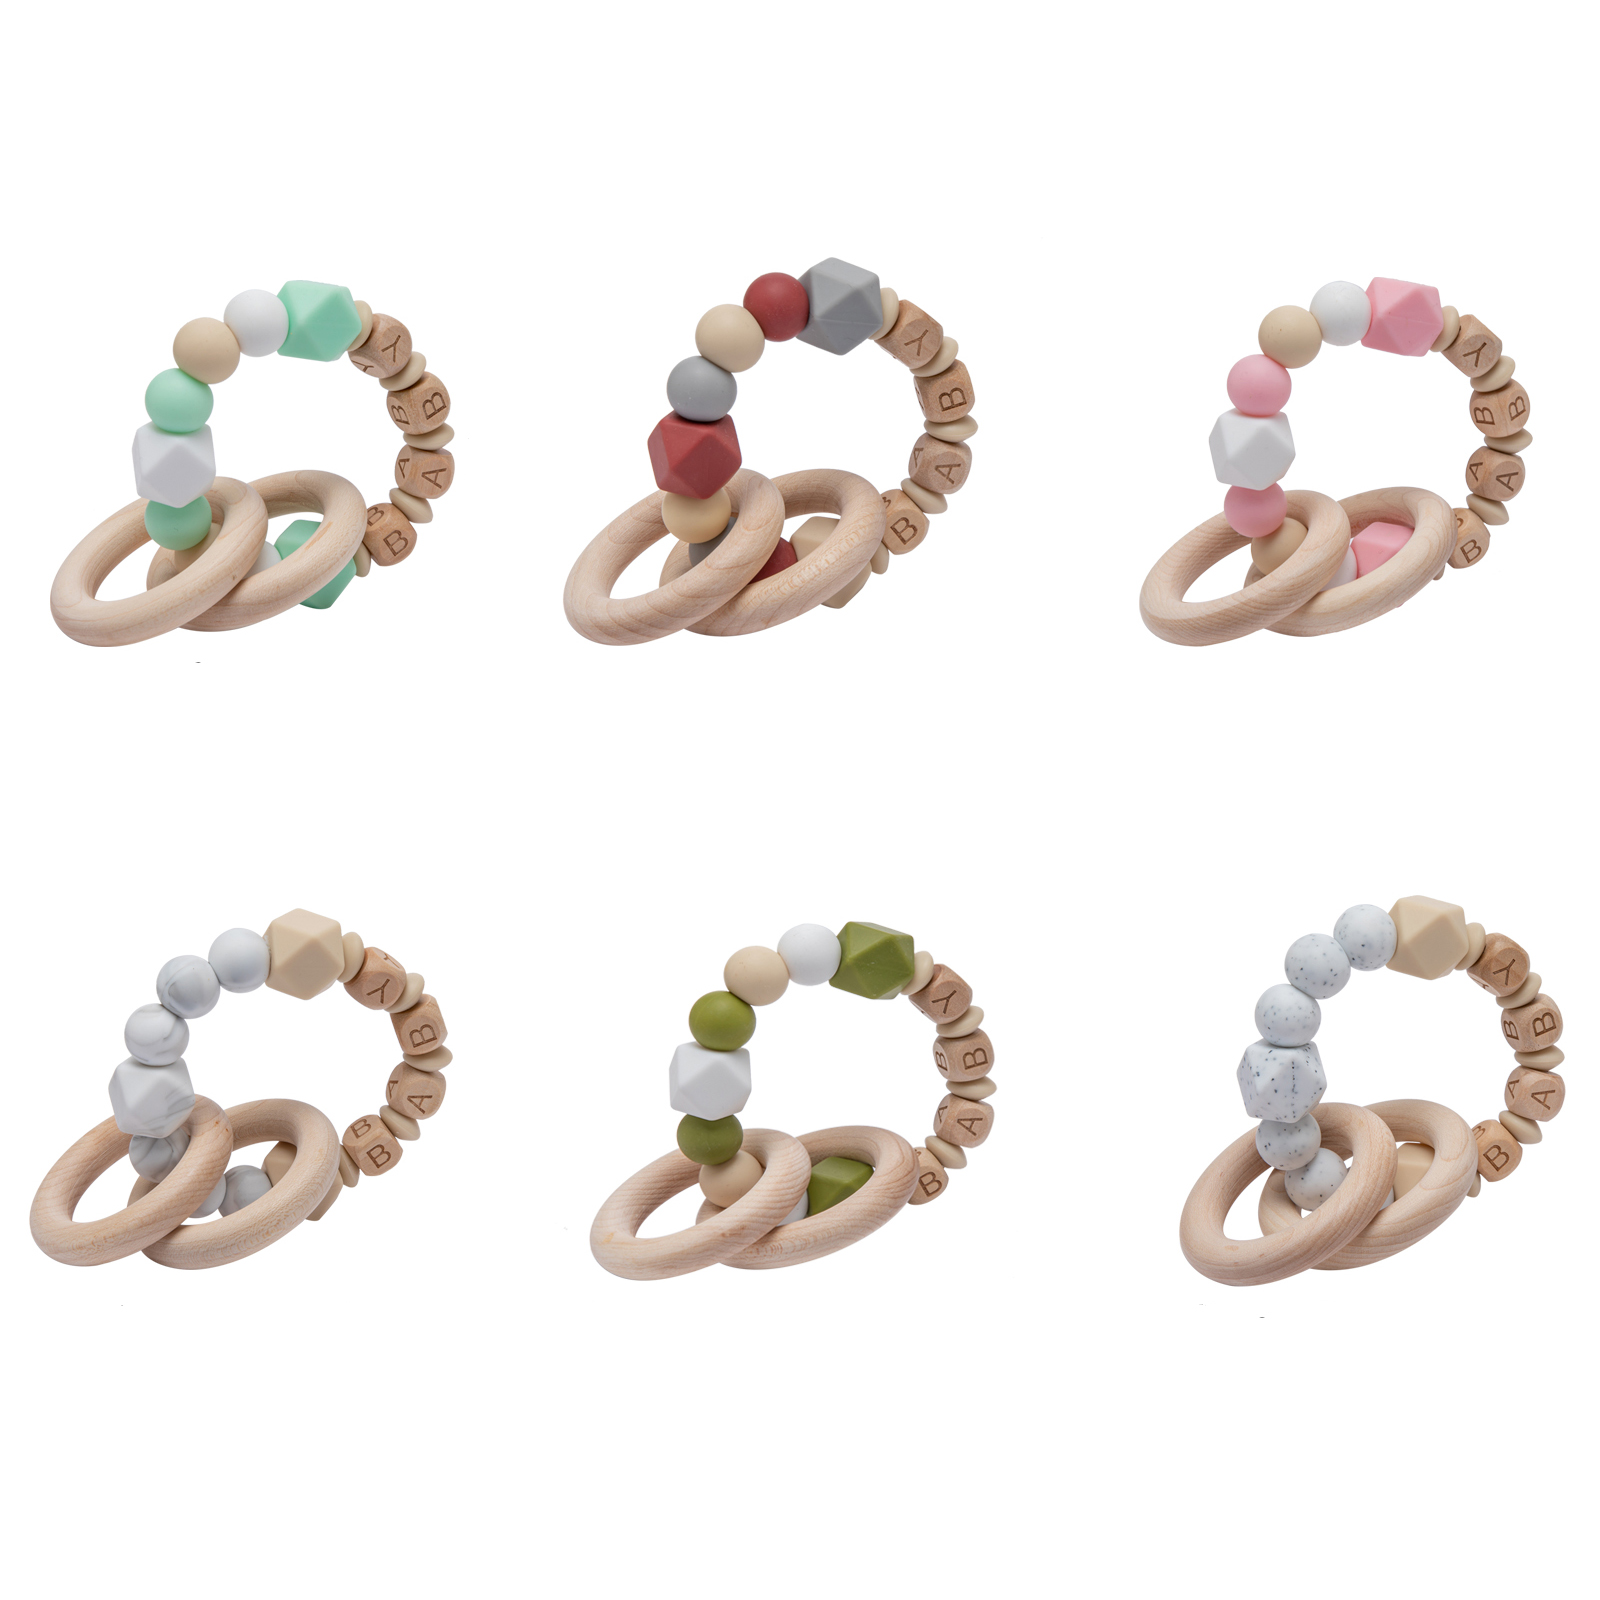 Ins Style Baby Teether Bracelets Food Grade Silicone Beads Bracelet Ring Baby Care Products Infant Toy Gift for 0-12 months